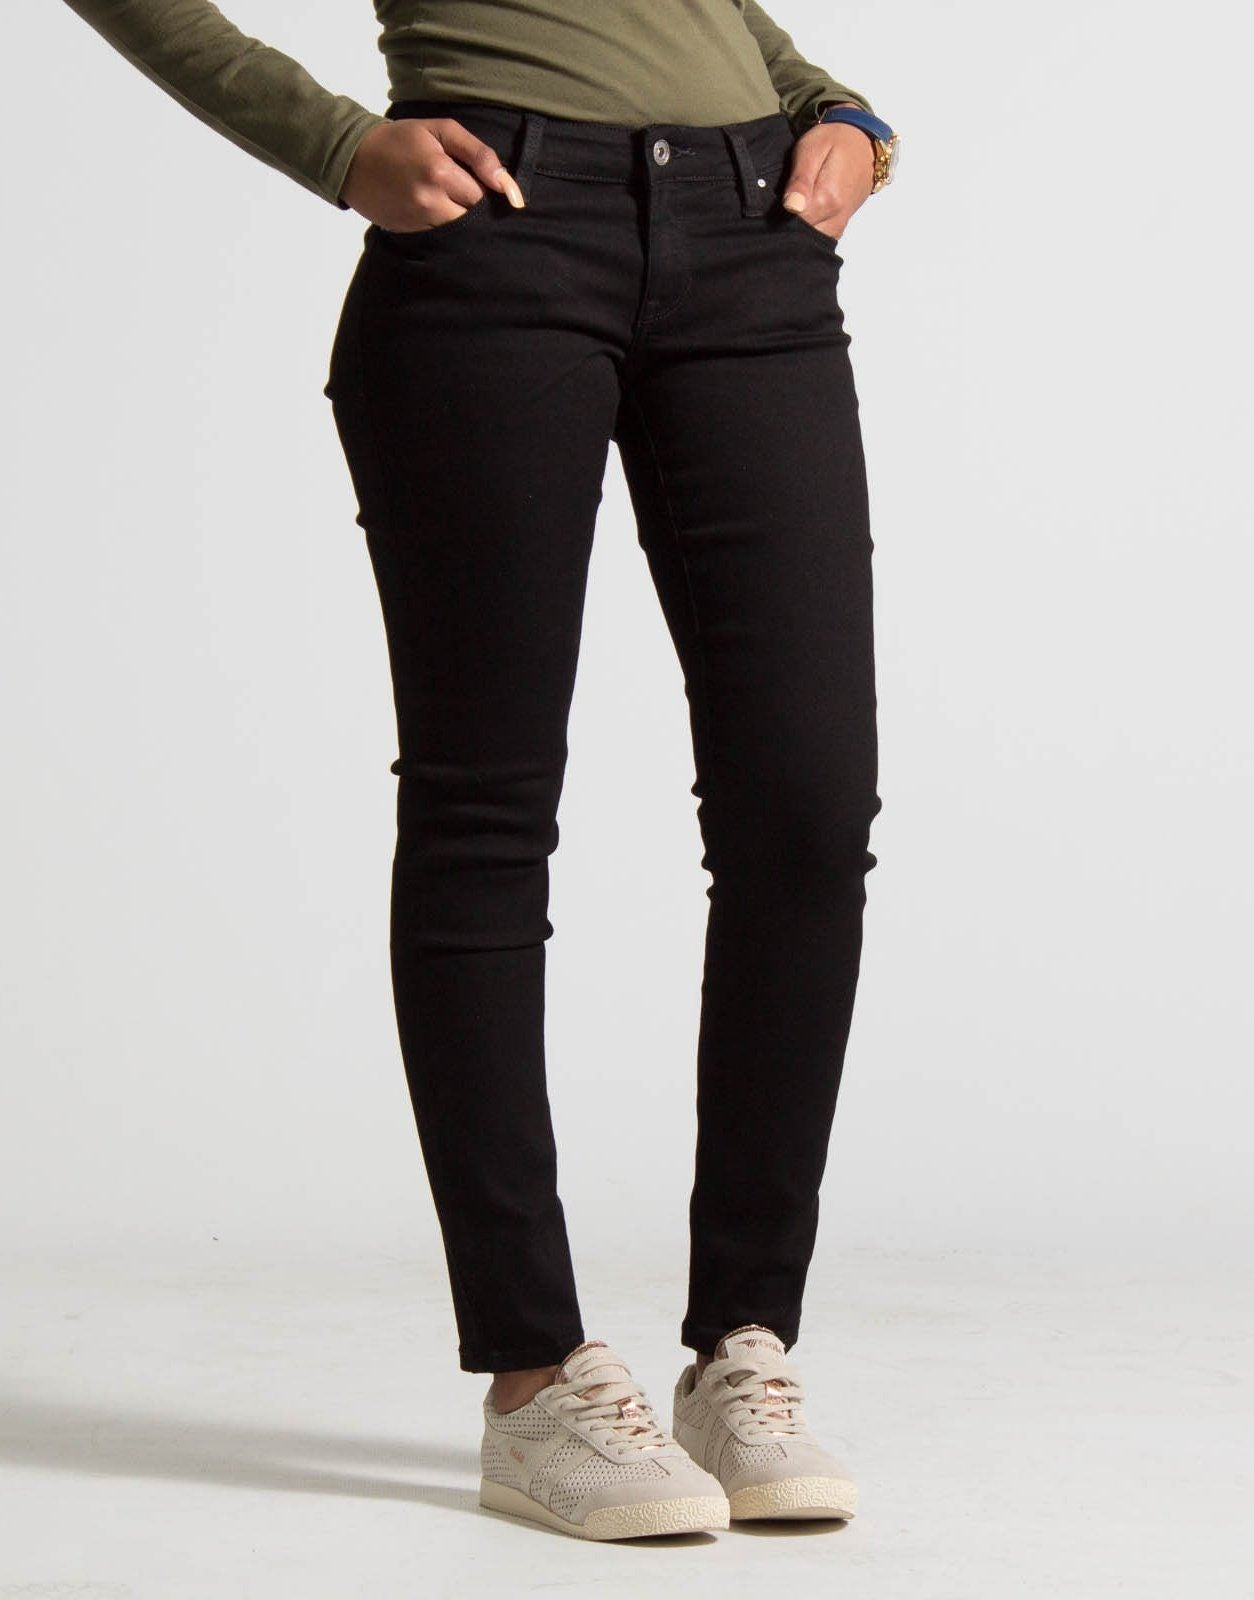 Guess Power Skinny Jeans, 27RG / Black